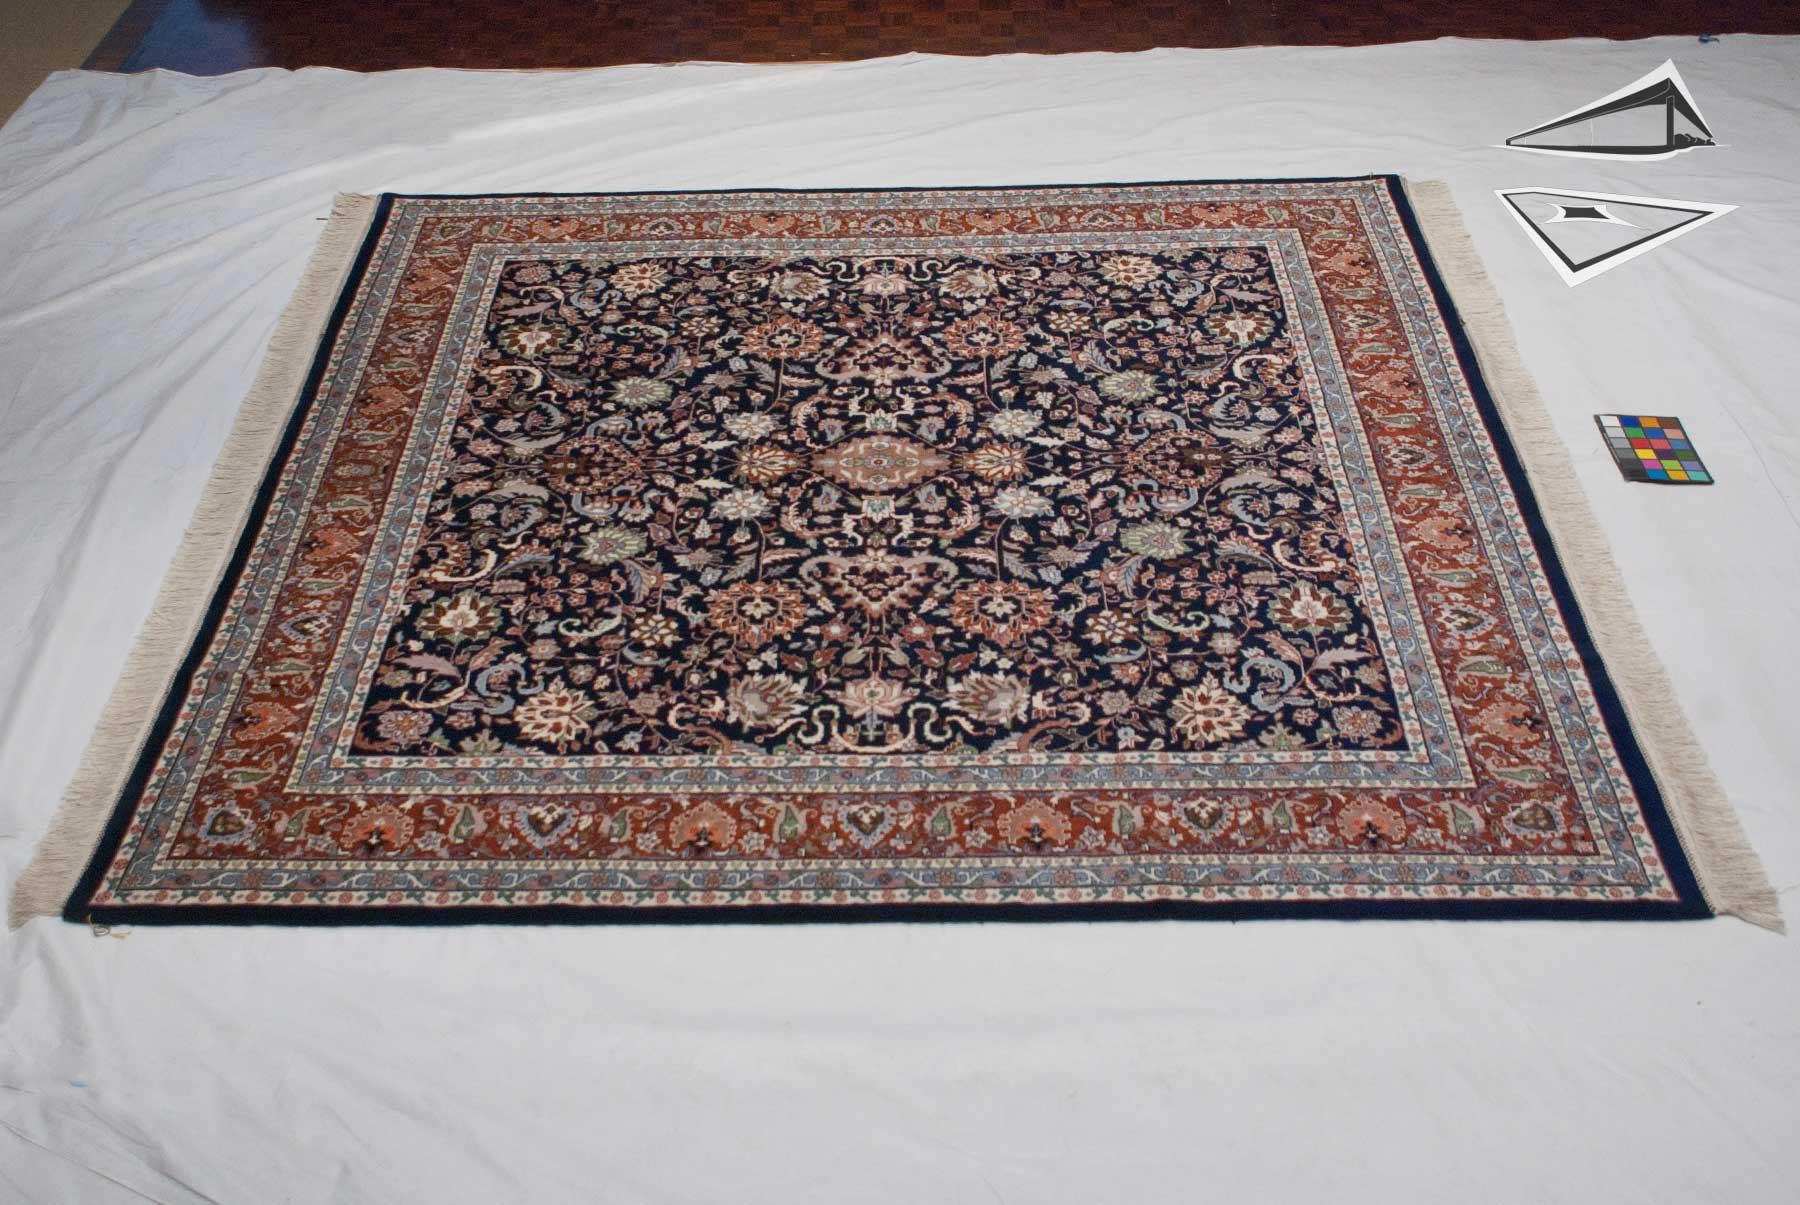 10 x 10 area rugs square for 10x10 carpet